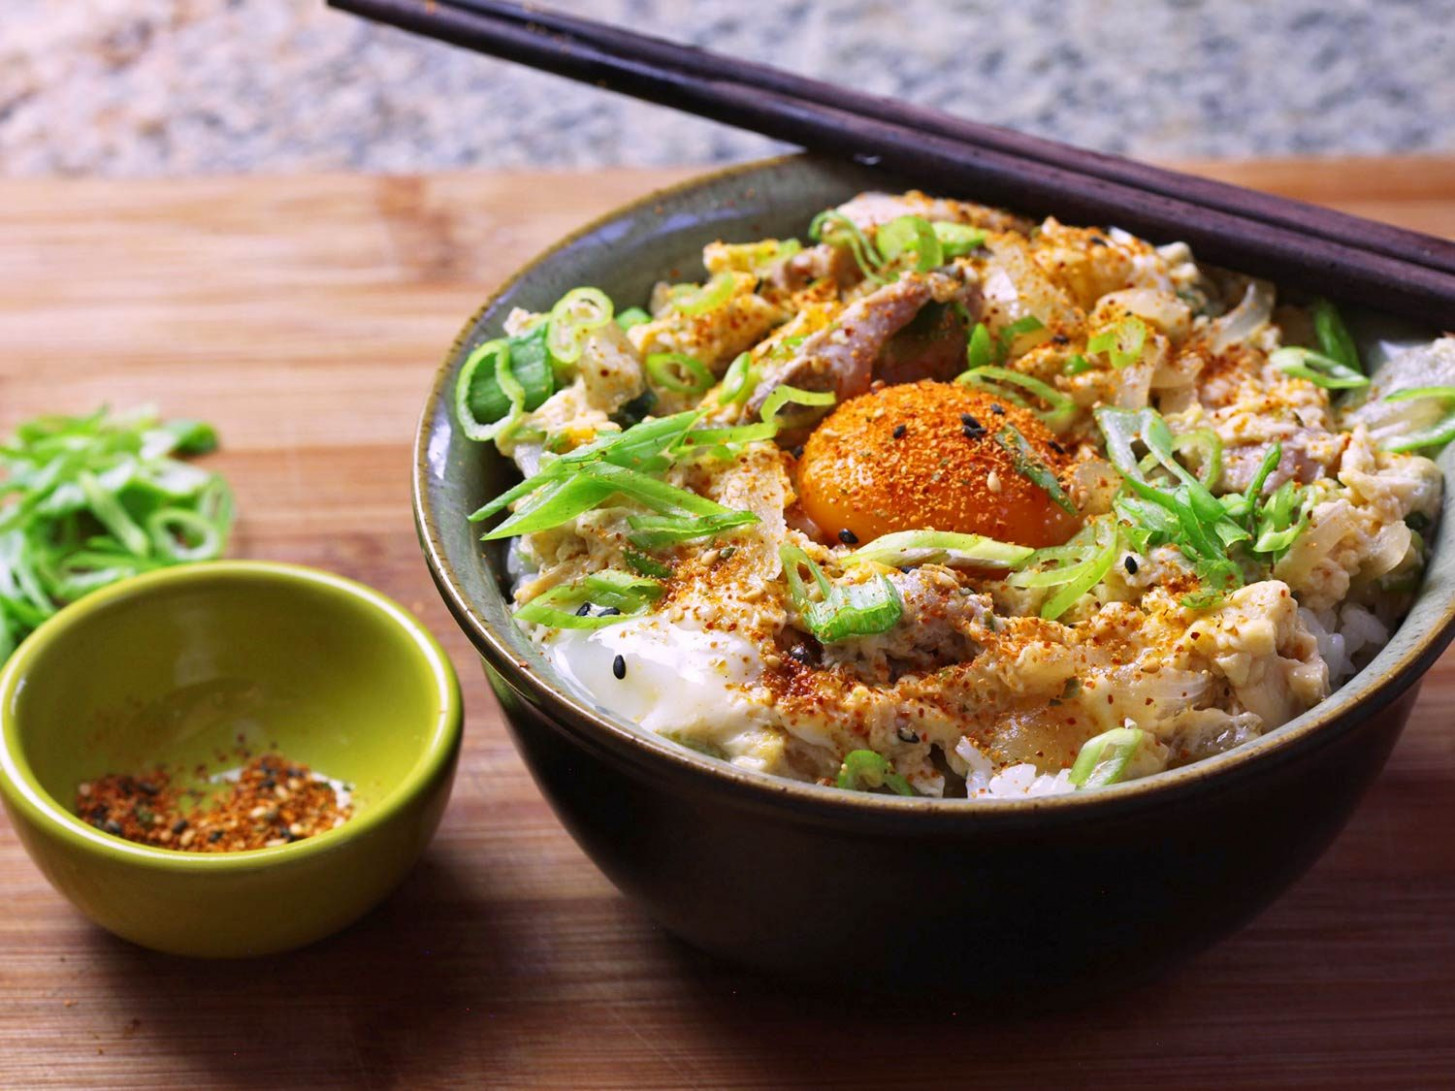 Oyakodon (Japanese Chicken and Egg Rice Bowl) Recipe - japanese food recipes with pictures